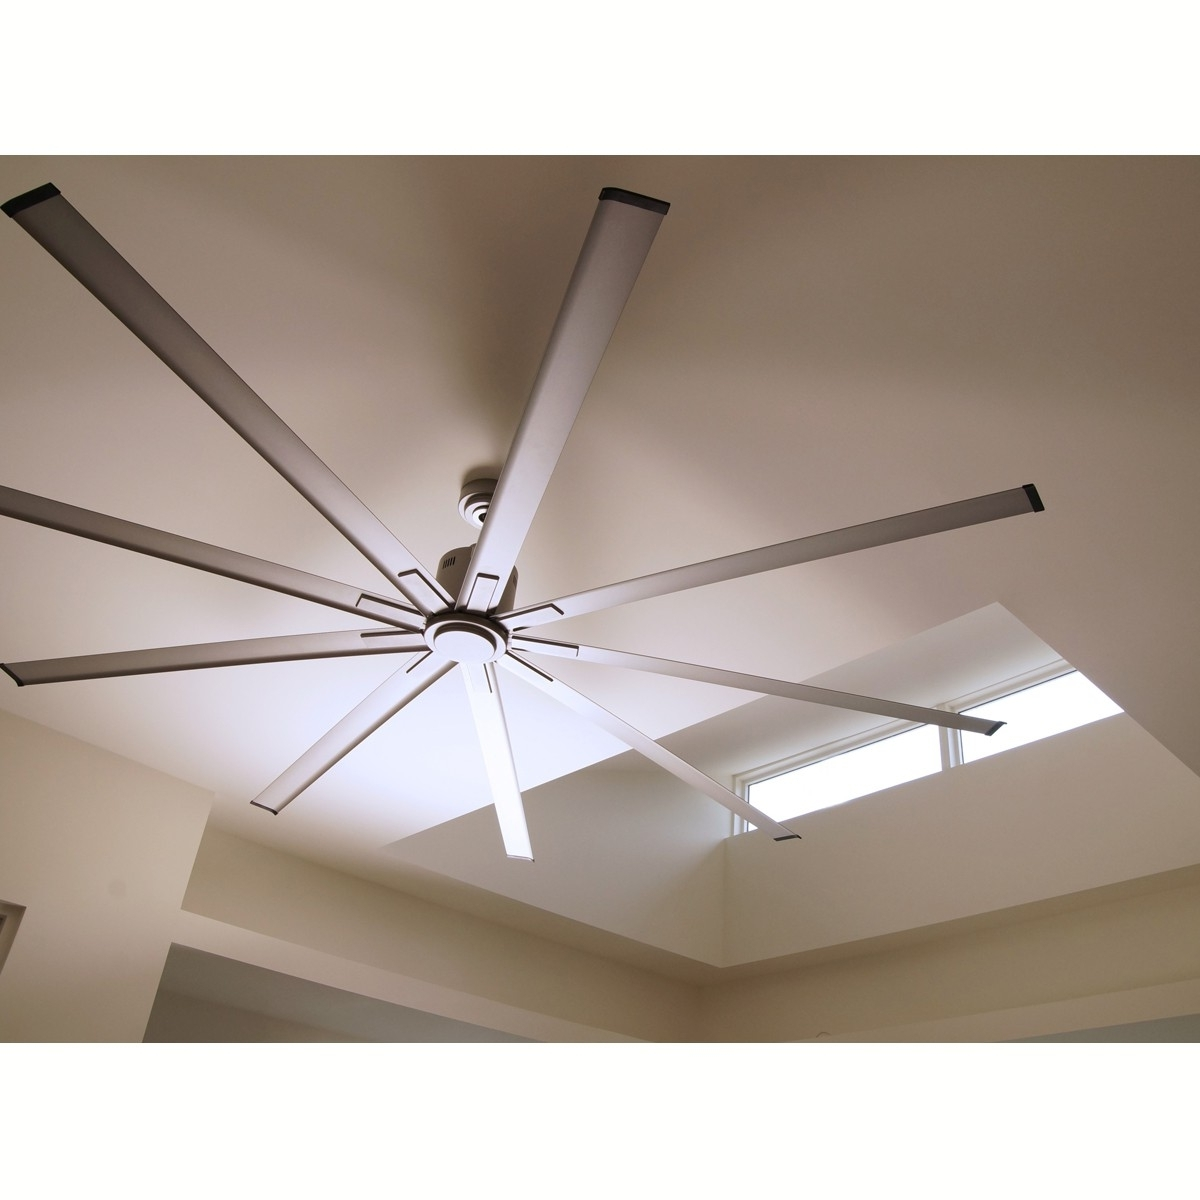 20 72 Ceiling Fan, 72 In 8 Blade Brushed Nickel Led Ceiling Fan With In Well Known 72 Inch Outdoor Ceiling Fans (View 1 of 20)